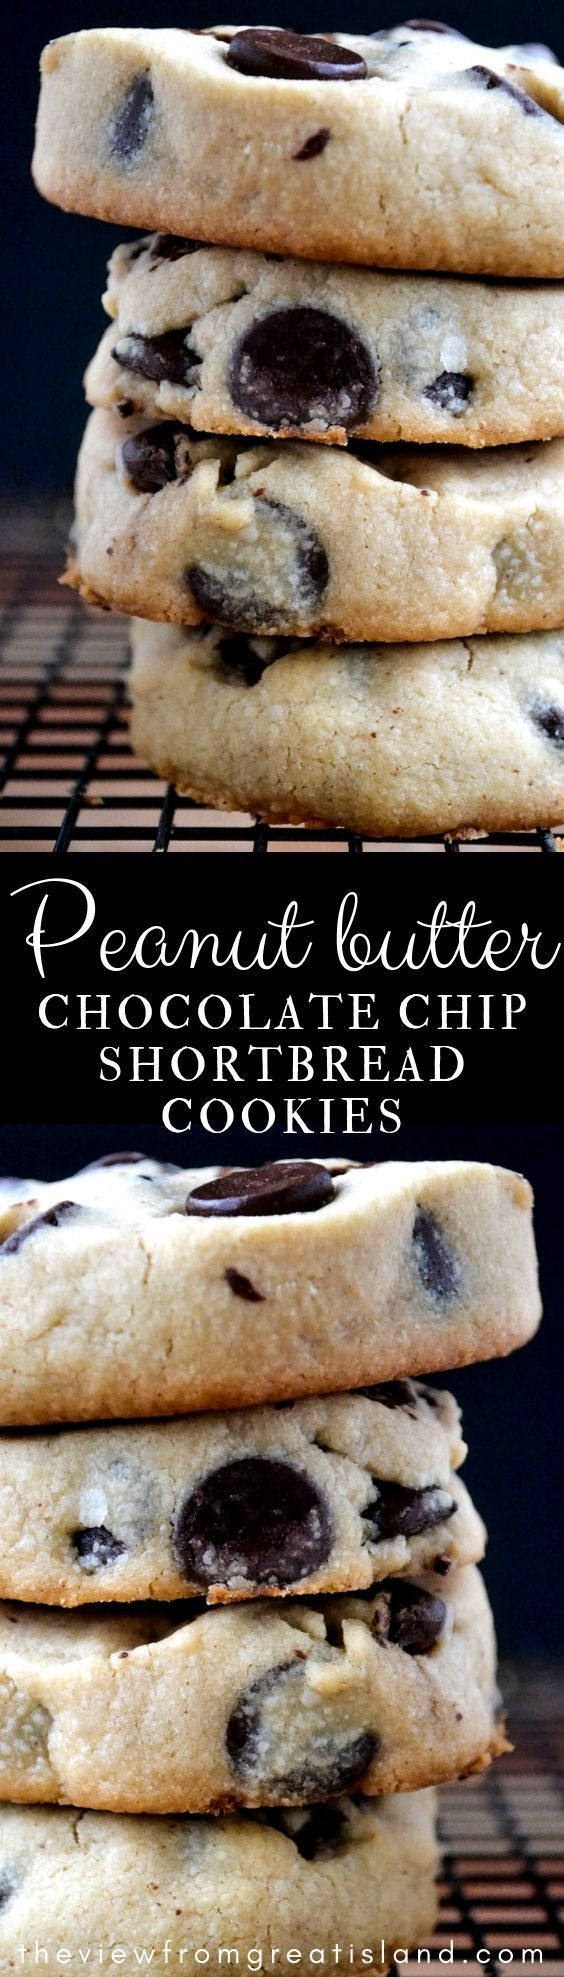 Butter Chocolate Chip Shortbread Cookies Peanut Butter Chocolate Chip Shortbread Cookies are an easy to make slice and bake chocolate chip cookie recipe with a melt in your mouth texture!Peanut Butter Chocolate Chip Shortbread Cookies are an...